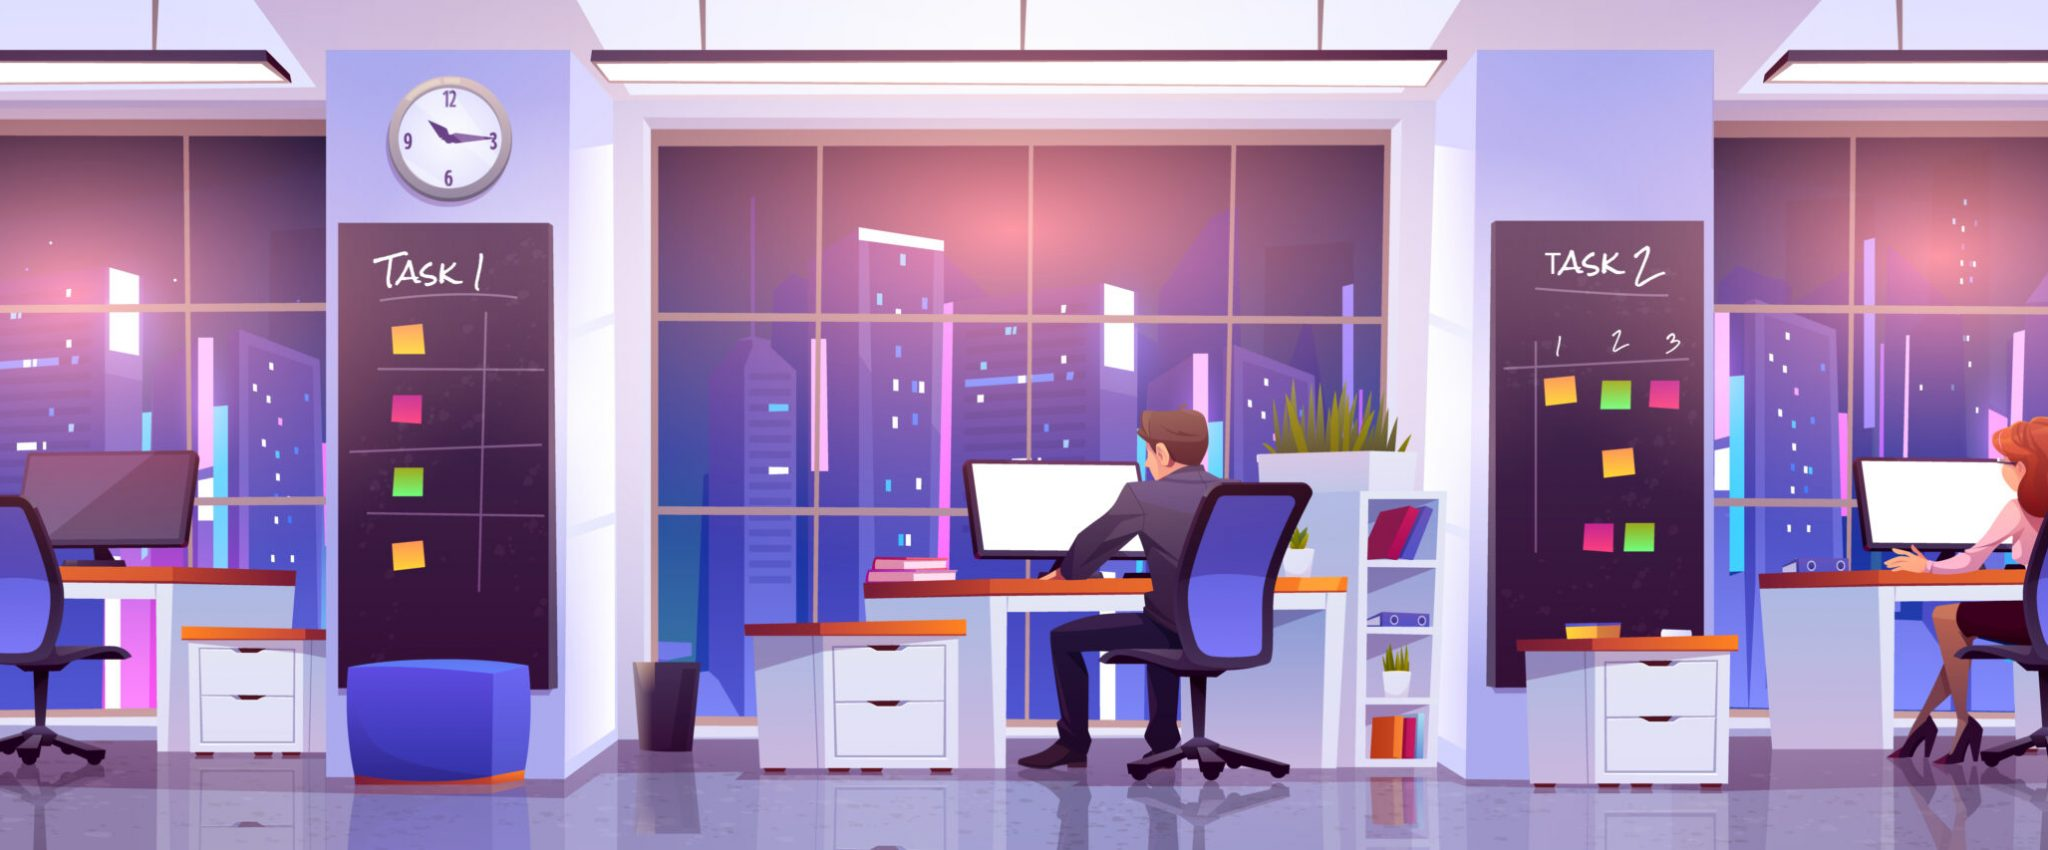 Office workers at workplace at night time. Business people man and woman rear view sitting at desks work on computers front of wide floor-to-ceiling windows with cityview, Cartoon vector illustration